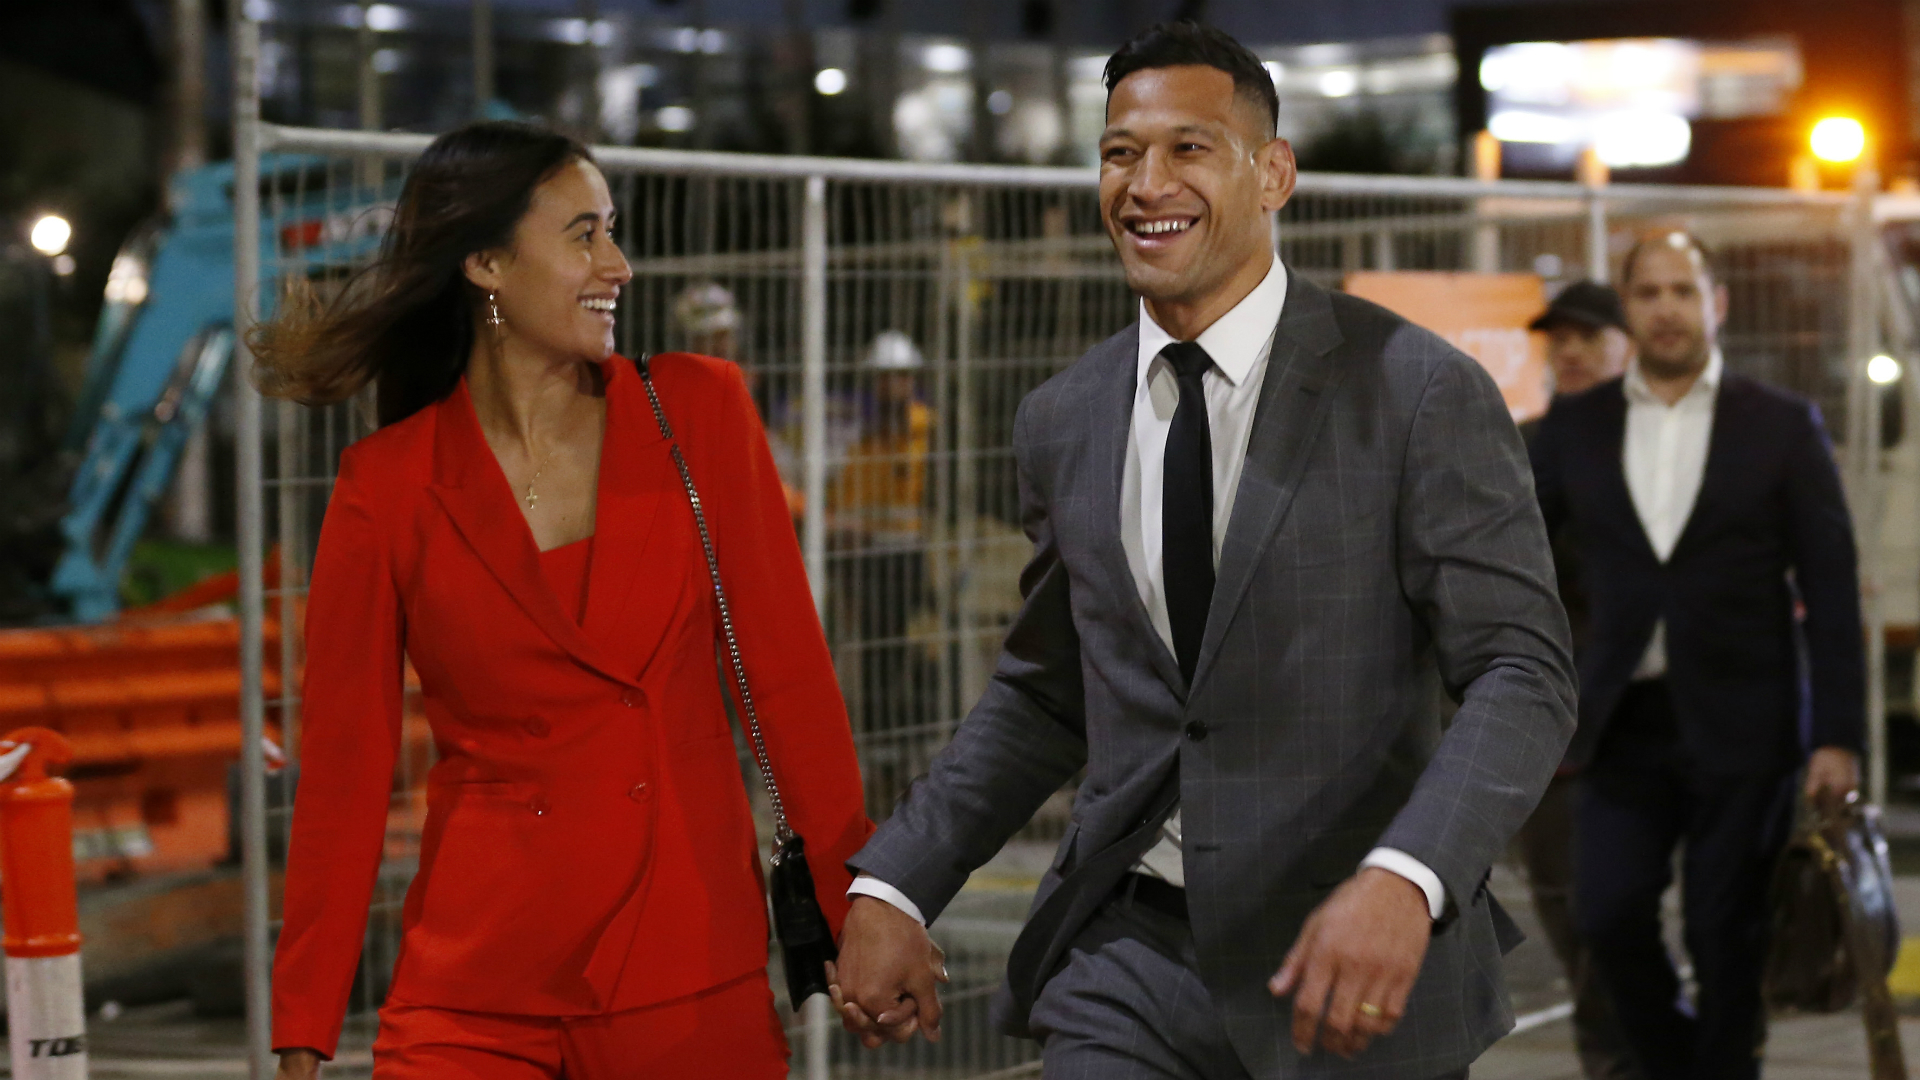 'Vindicated' Israel Folau calls for new religious freedom laws after RA settlement